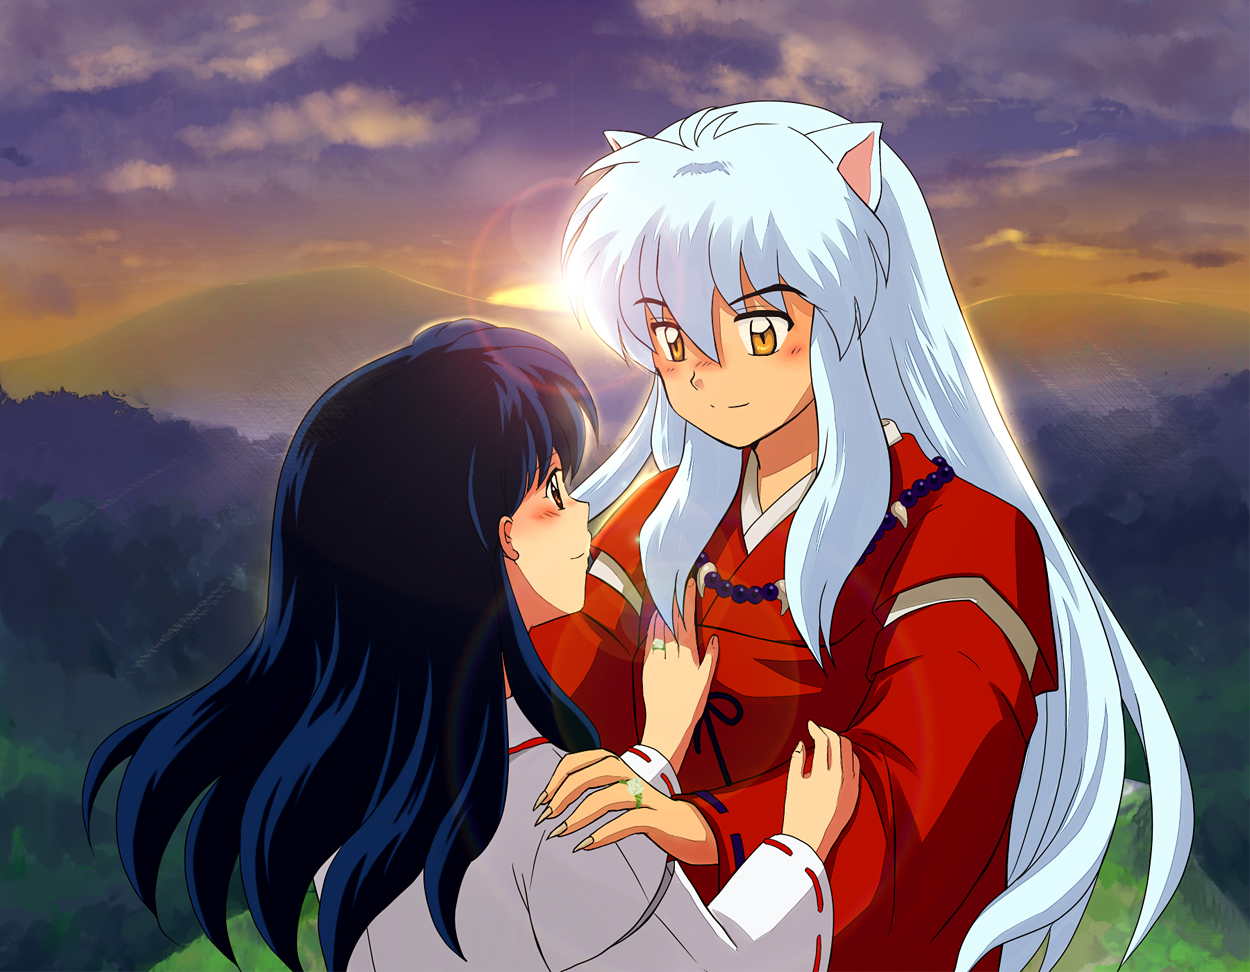 Inuyasha and Kagome Doing It http://www.fanpop.com/clubs/inuyasha-and-ranma-1-2/images/33386238/title/inuyasha-kagome-photo